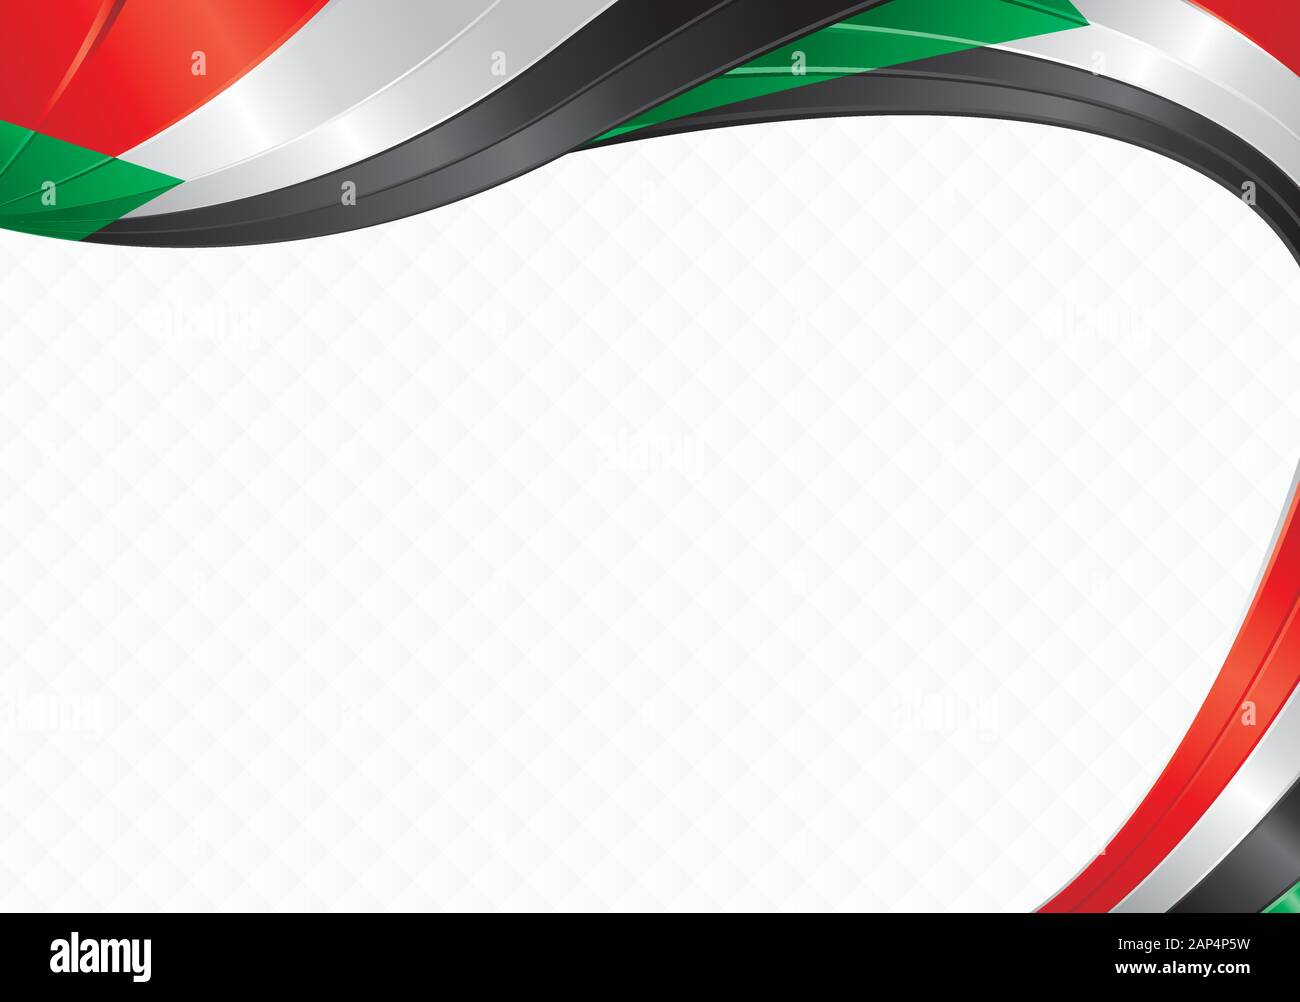 Abstract Background With Wave Shapes With The Black Green White Red Colors Of The Flag Of Sudan To Use As Diploma Or Certificate Stock Vector Image Art Alamy